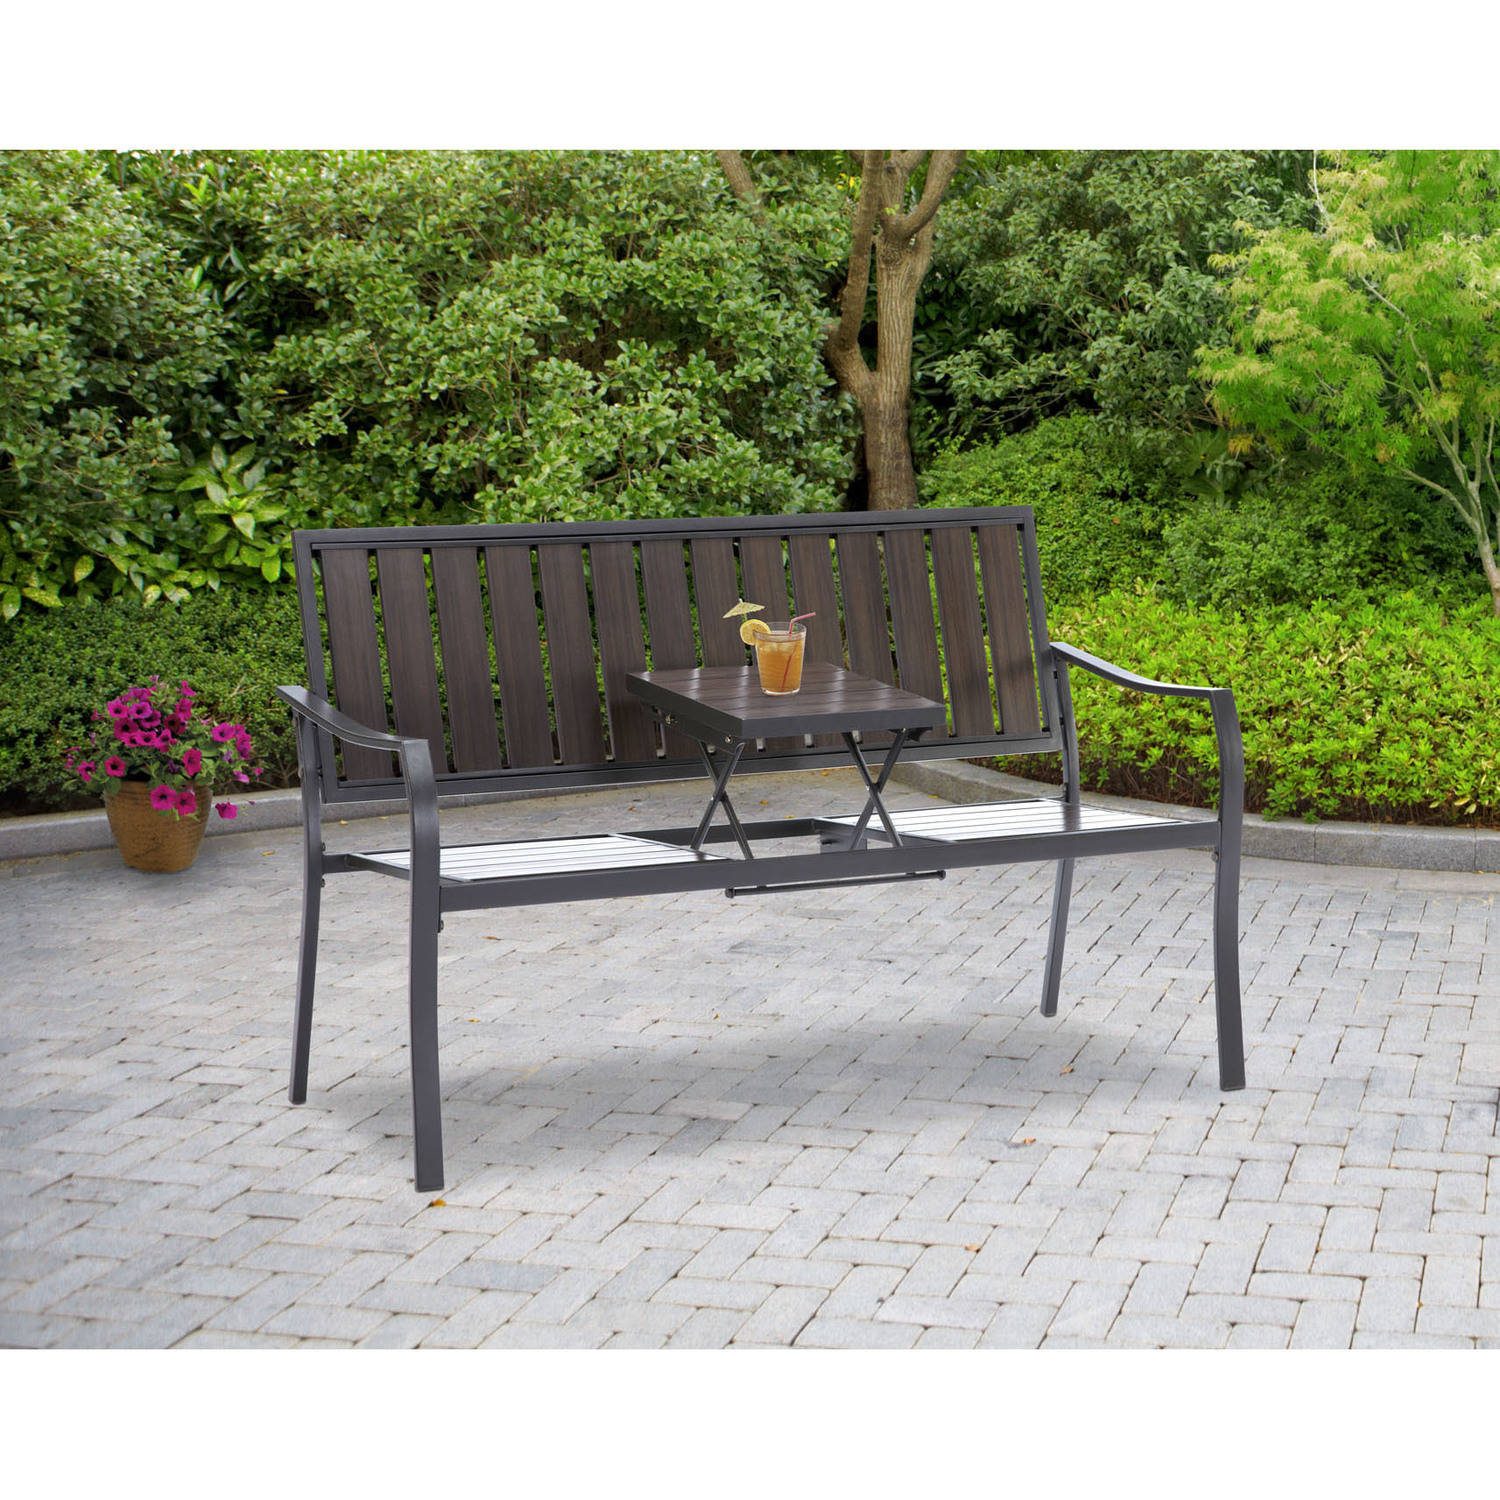 bcp 50 patio garden bench park yard outdoor furniture steel frame porch chair walmartcom - Garden Furniture Steel